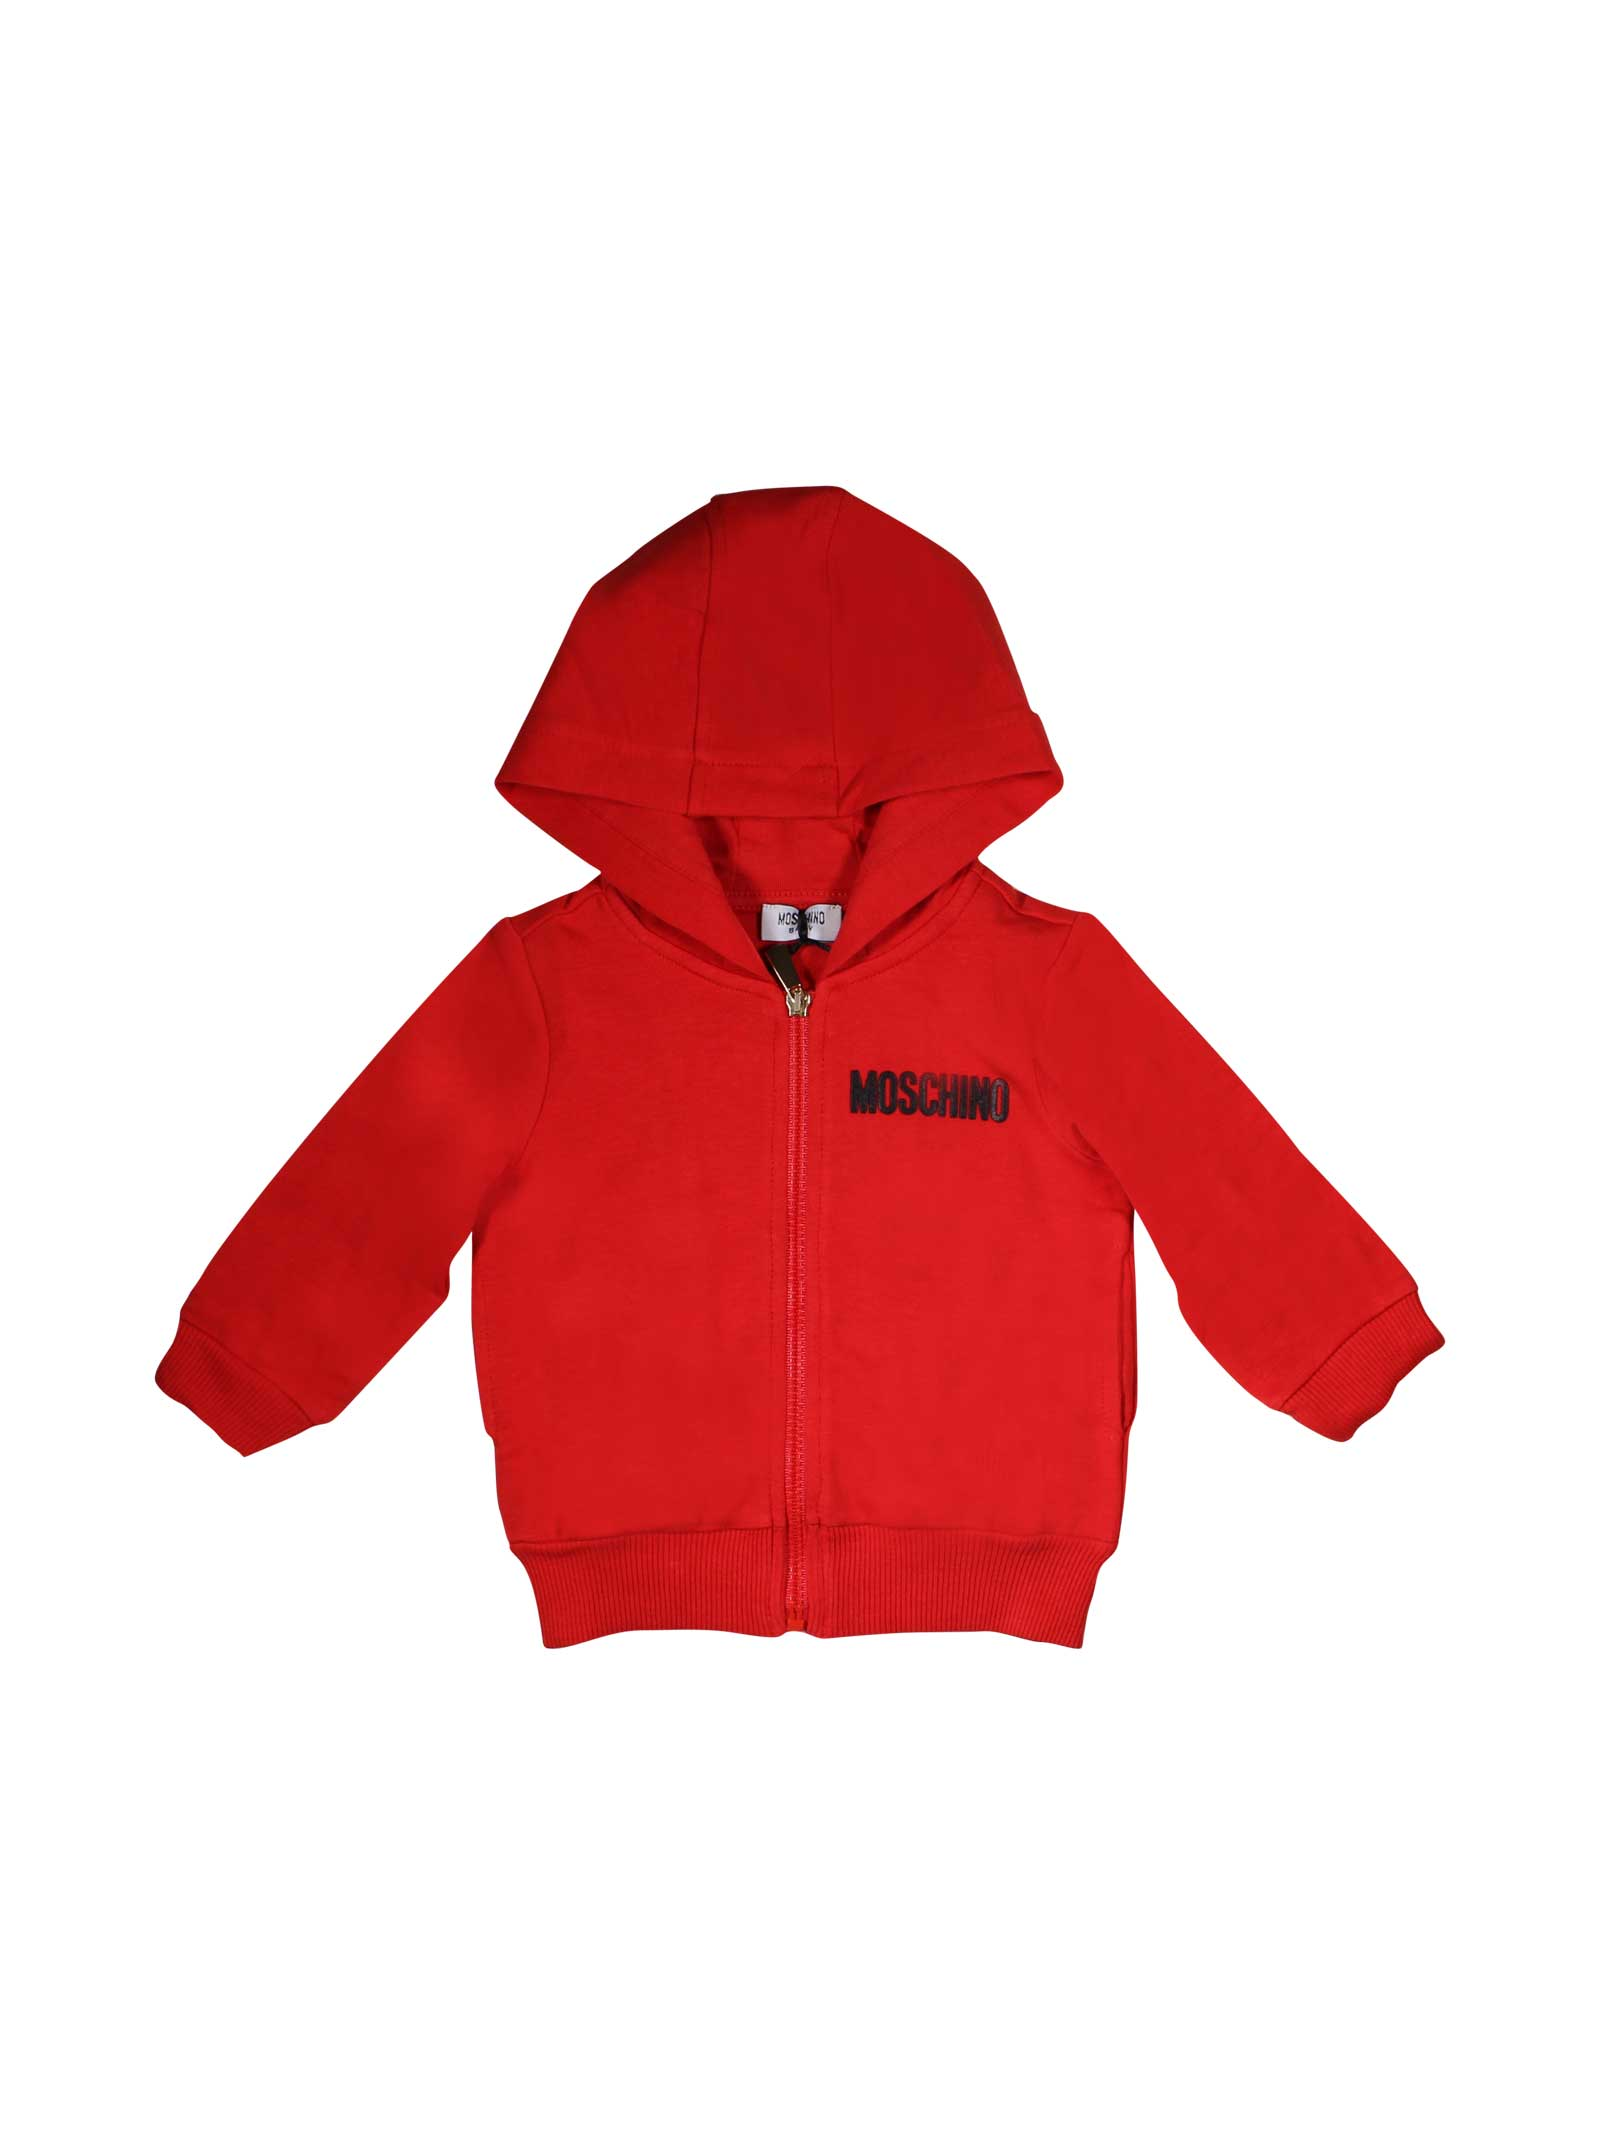 bf9c67edc RED MOSCHINO KIDS SWEATSHIRT FOR BABY - MOSCHINO KIDS - Mancini Junior